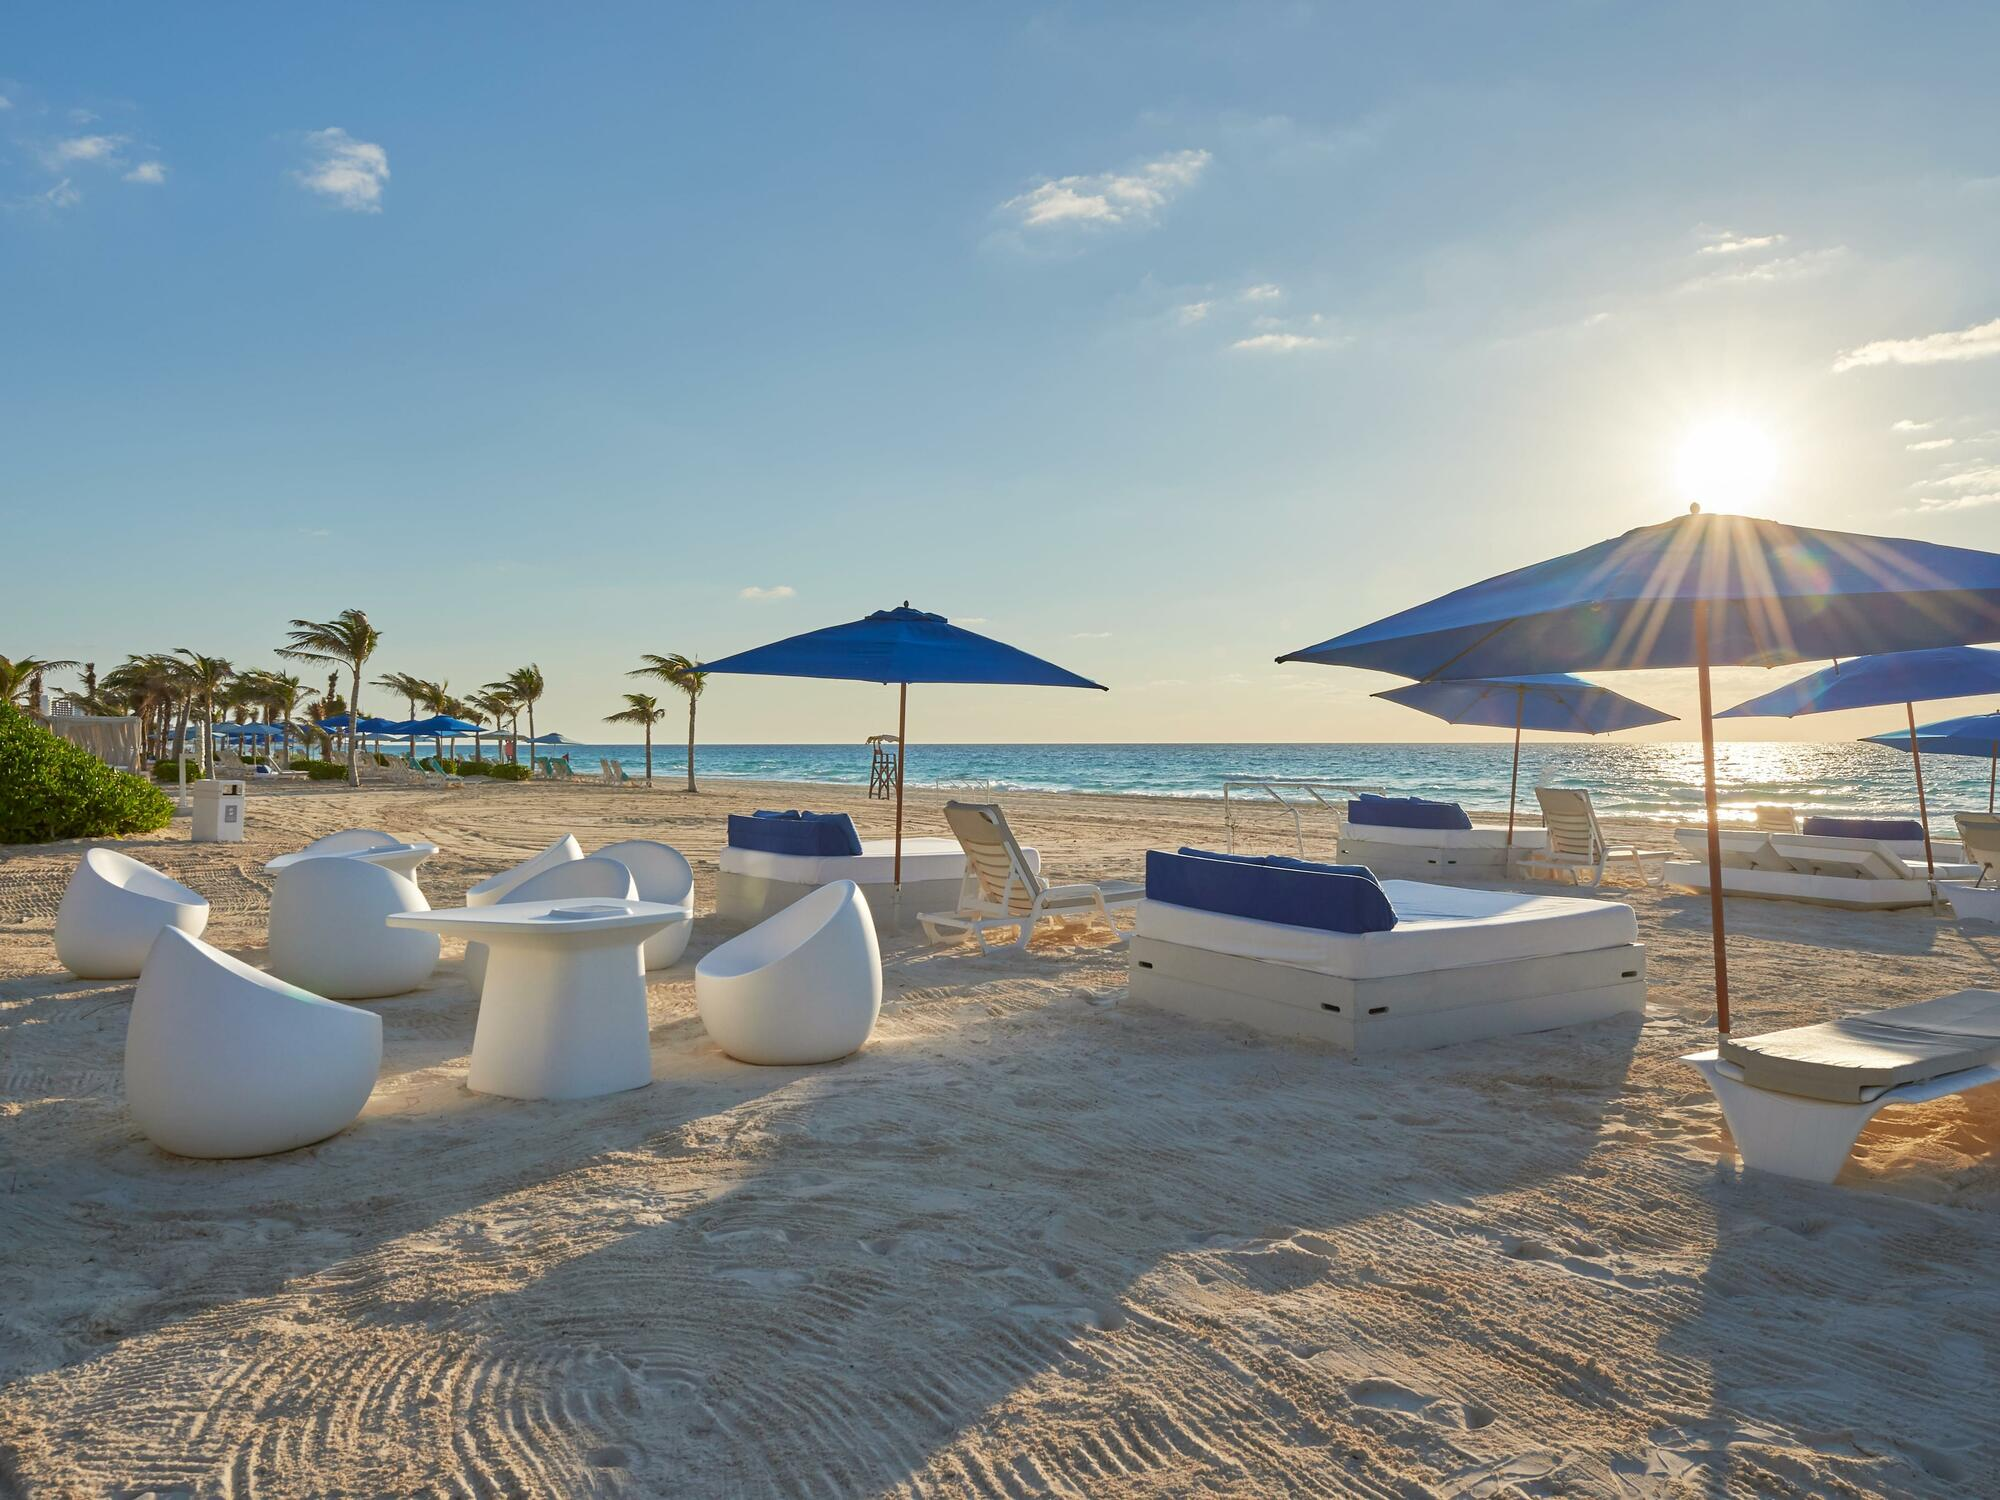 A beach with lounge chairs in the Cancún city